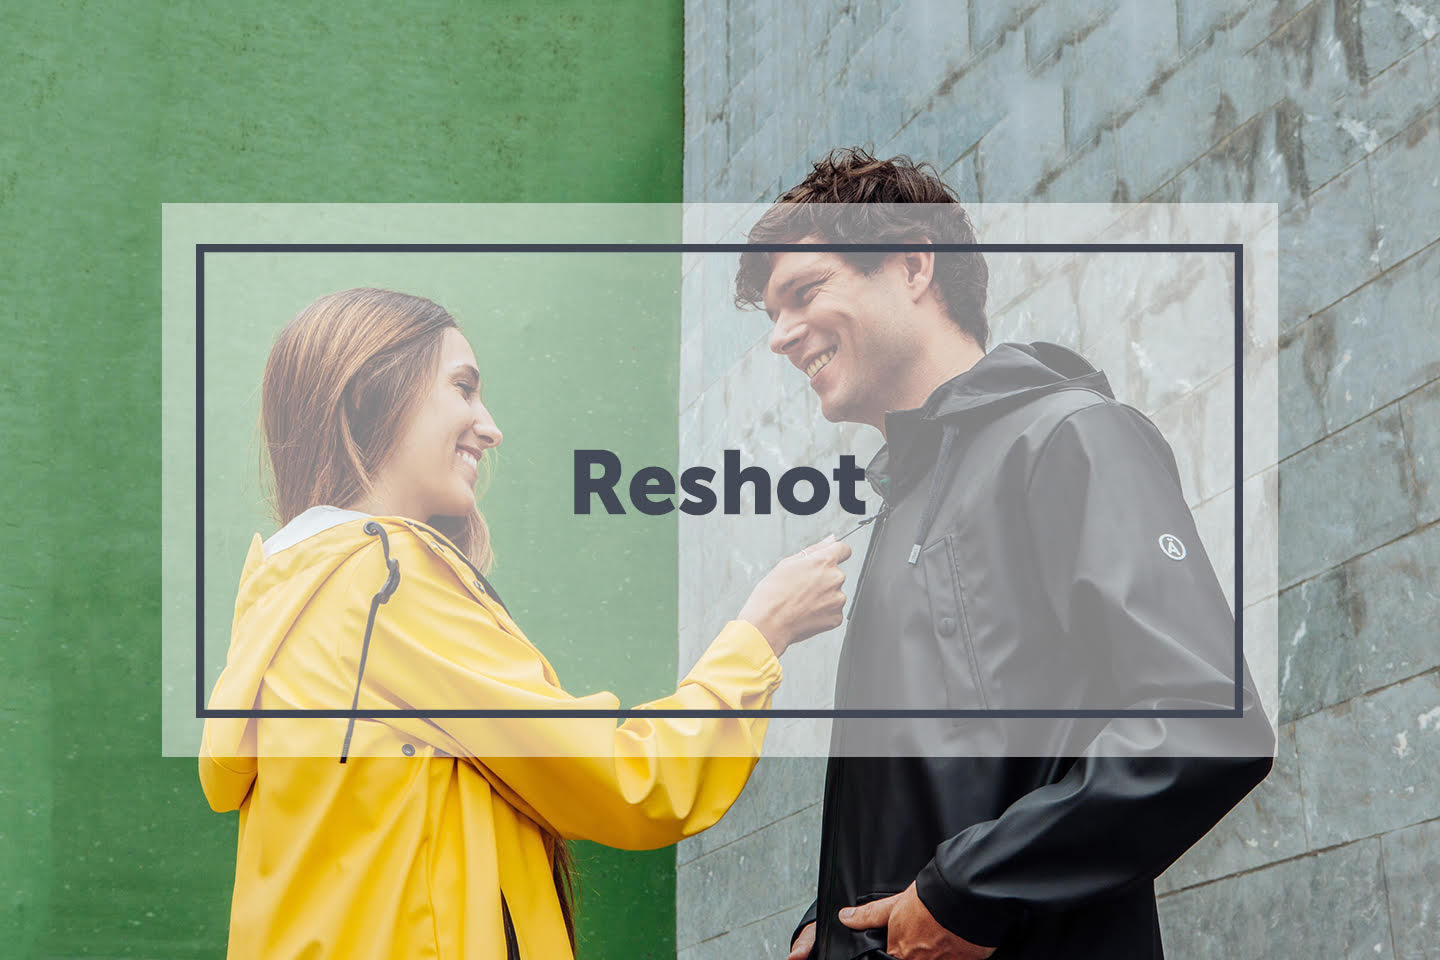 Reshot free stock photos